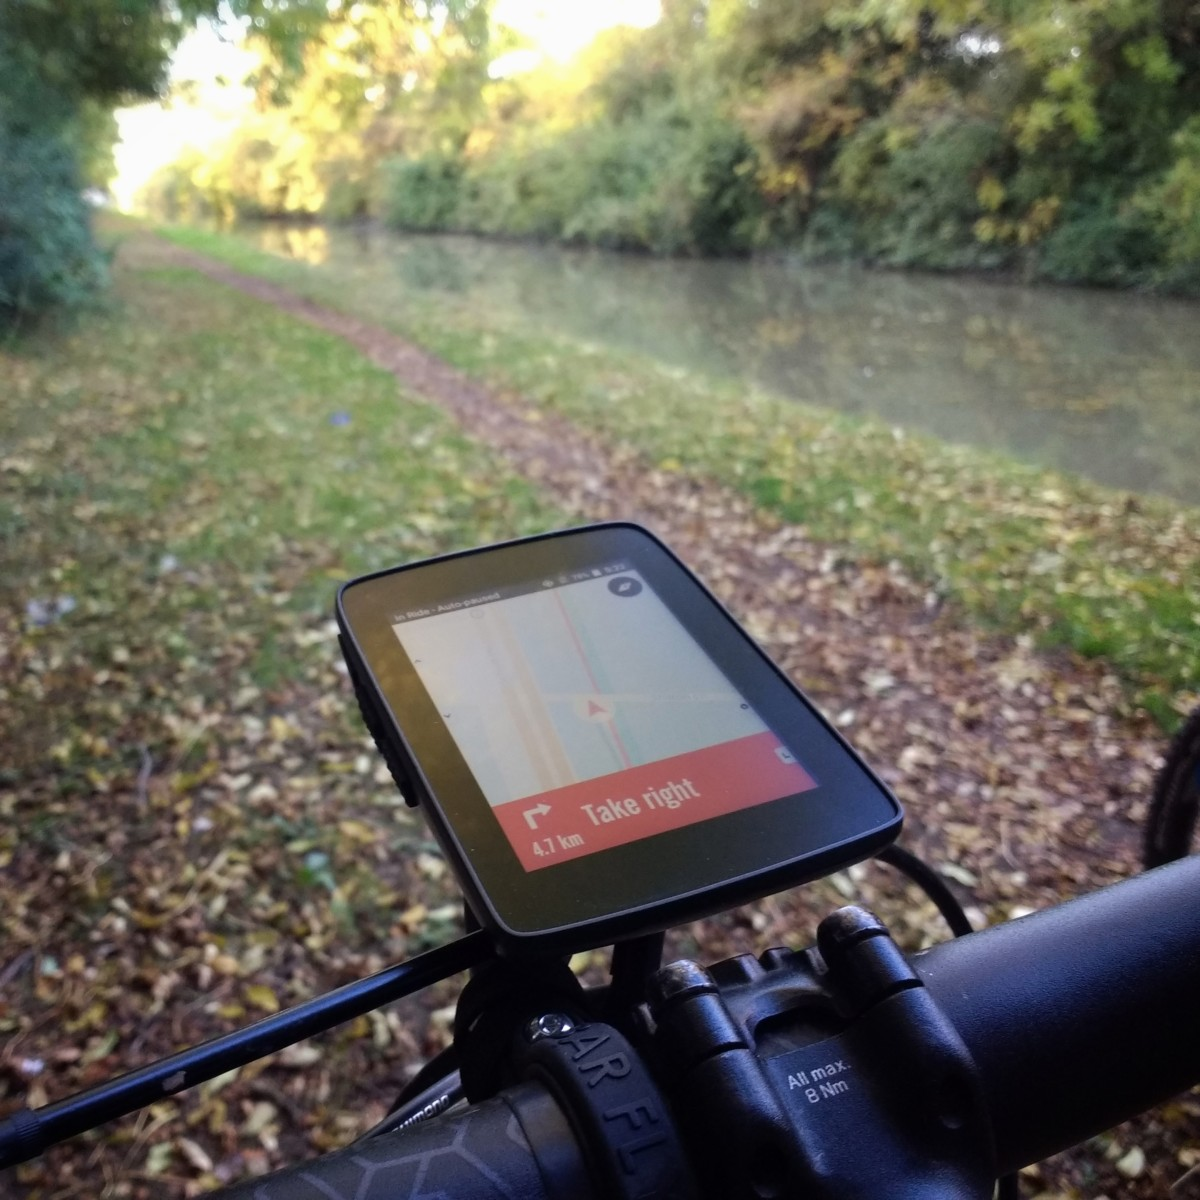 TitaniumGeek IMG 20181009 172232306 01 Hammerhead Karoo GPS Review   Android on your bike Cycling Cycling Computers and GPS Units Gear Reviews  Karoo GPS cycling Bike computer android   Image of IMG 20181009 172232306 01